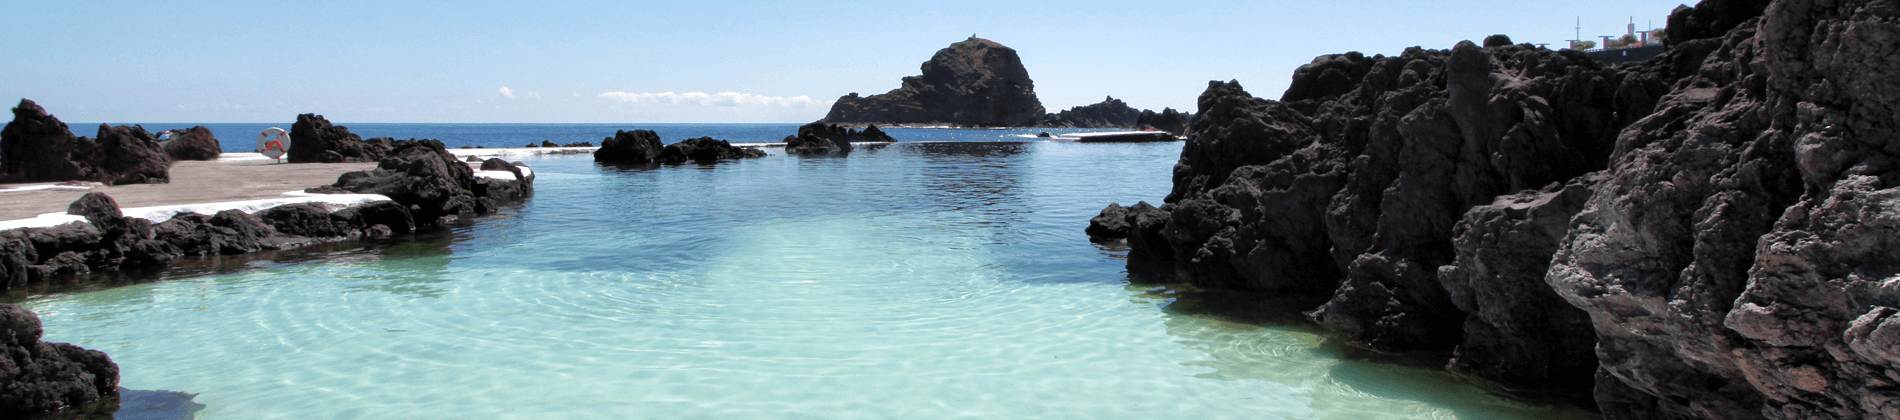 Piscinas-Naturais-Porto-Moniz-Choose-Madeira-Island